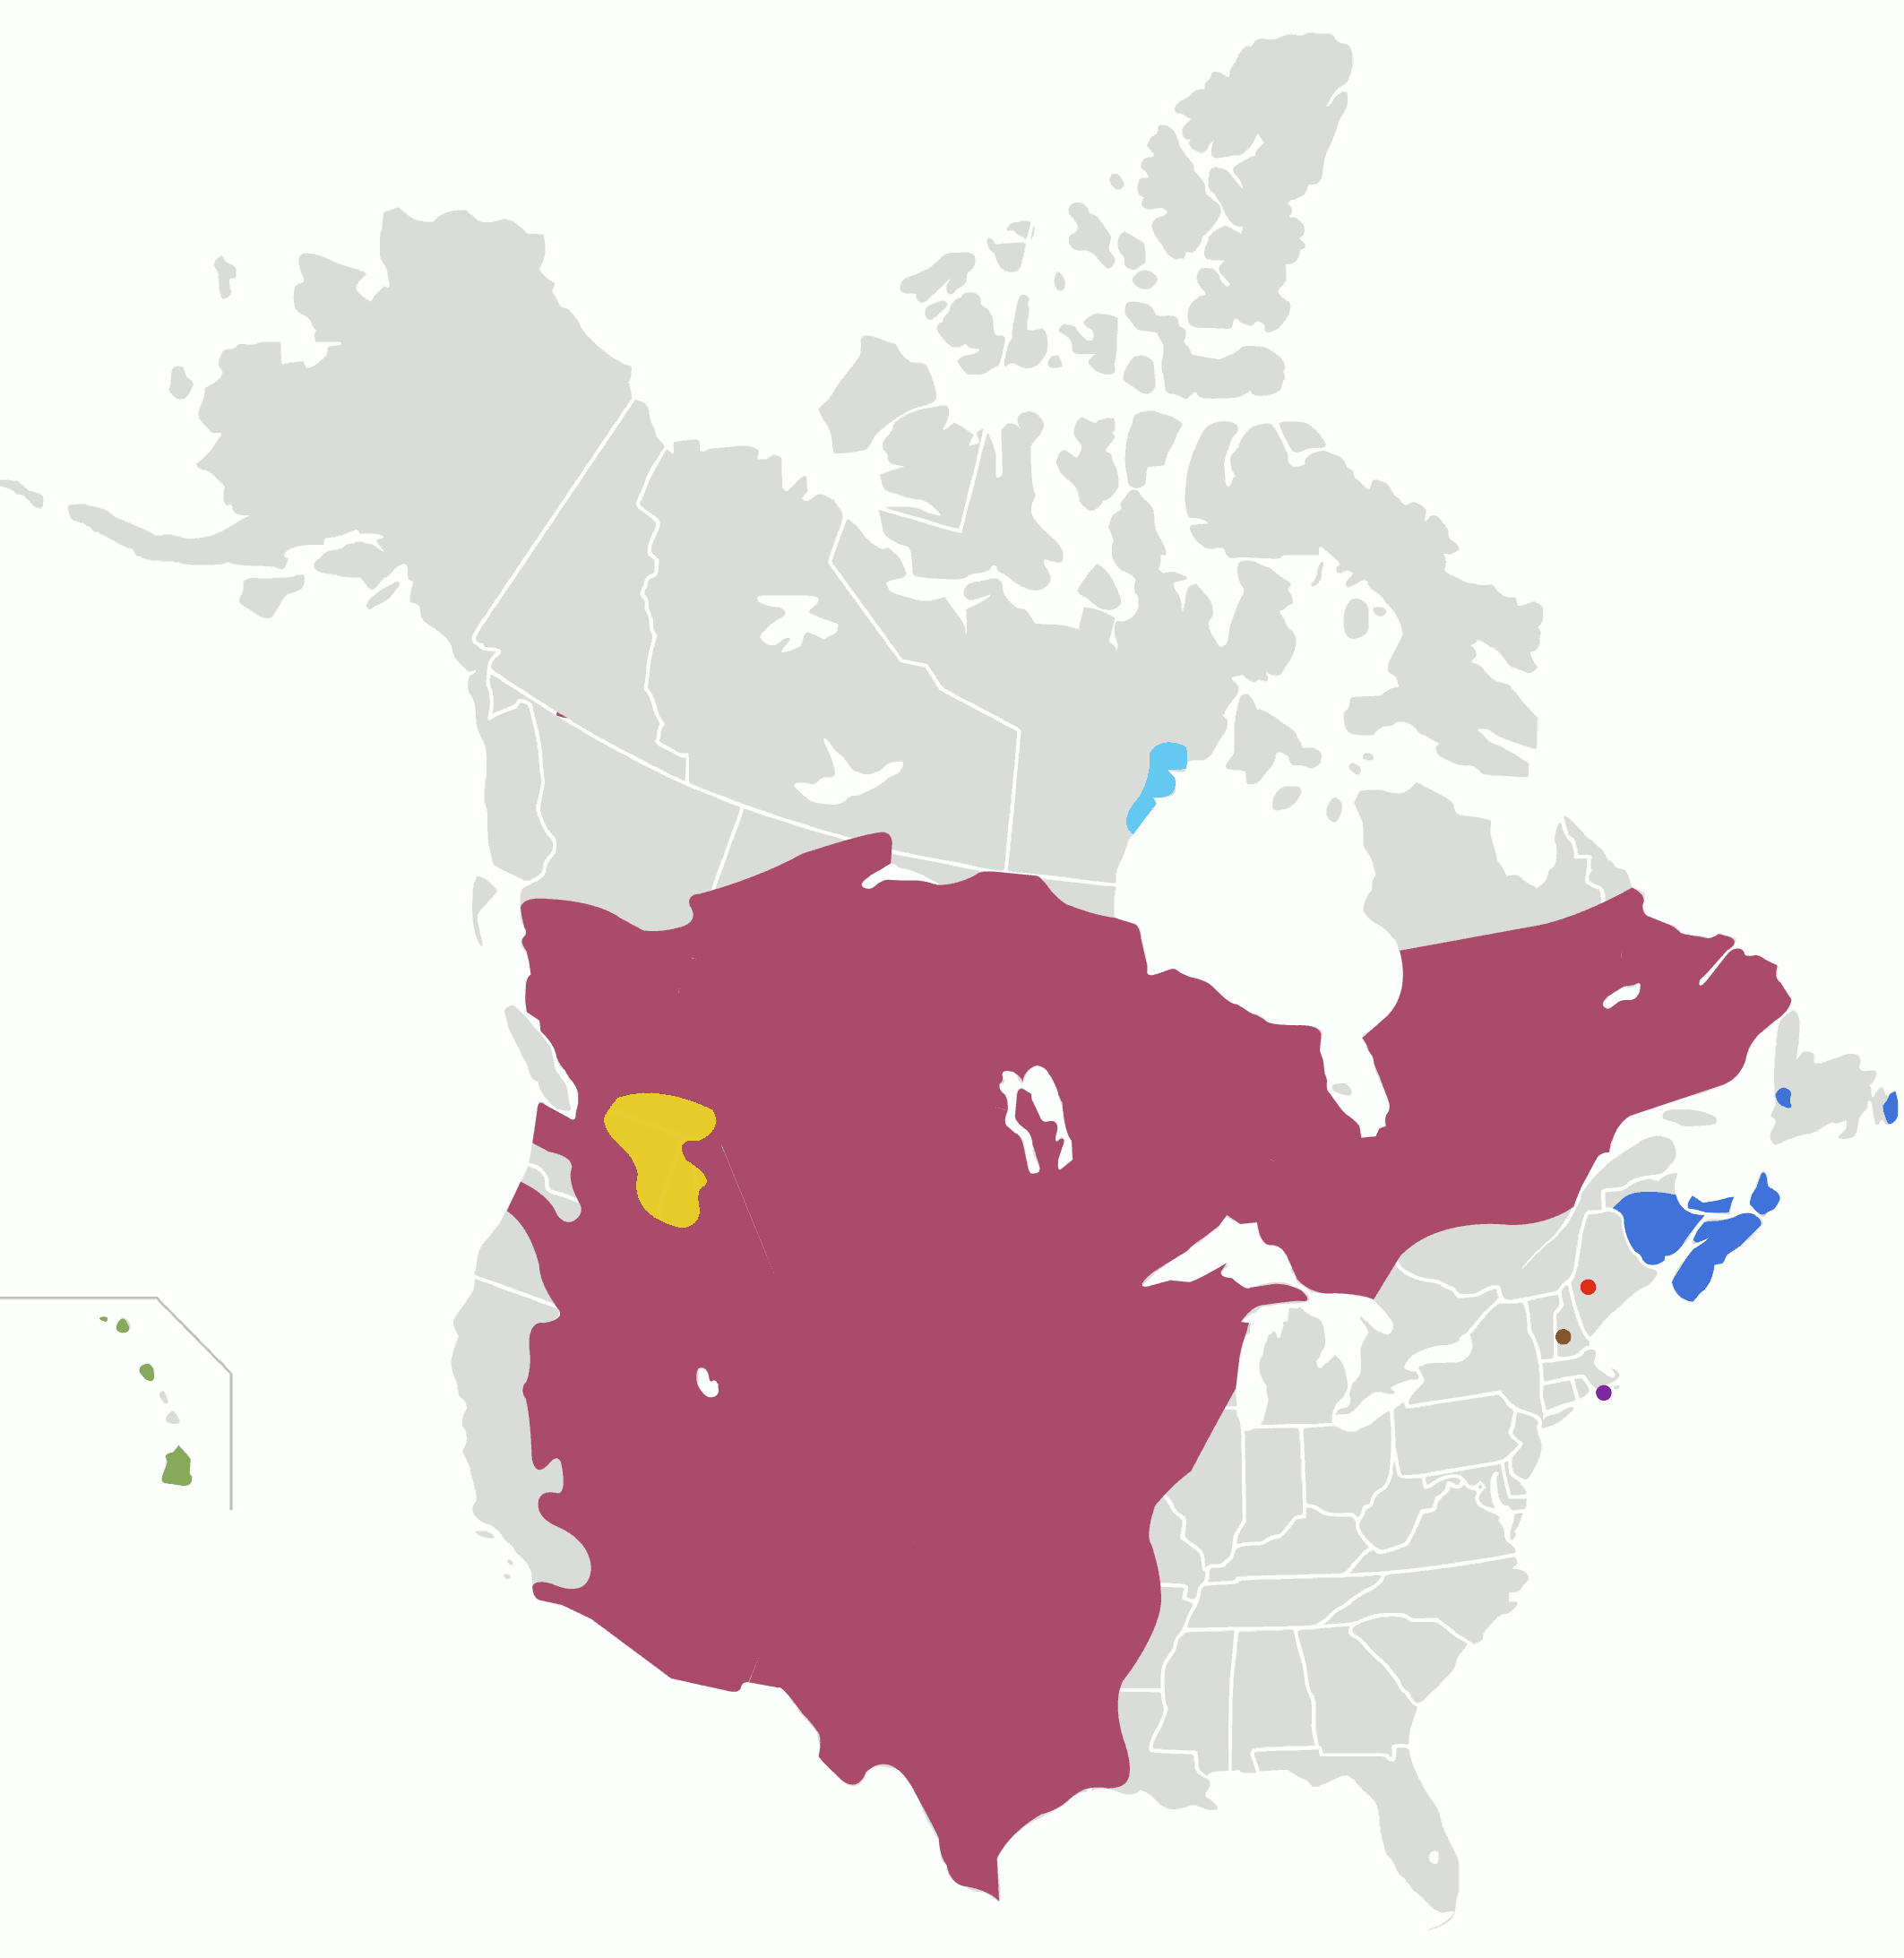 FileUS Canada Signlanguage Map Excl ASL And LSQpng - Us and canadian map